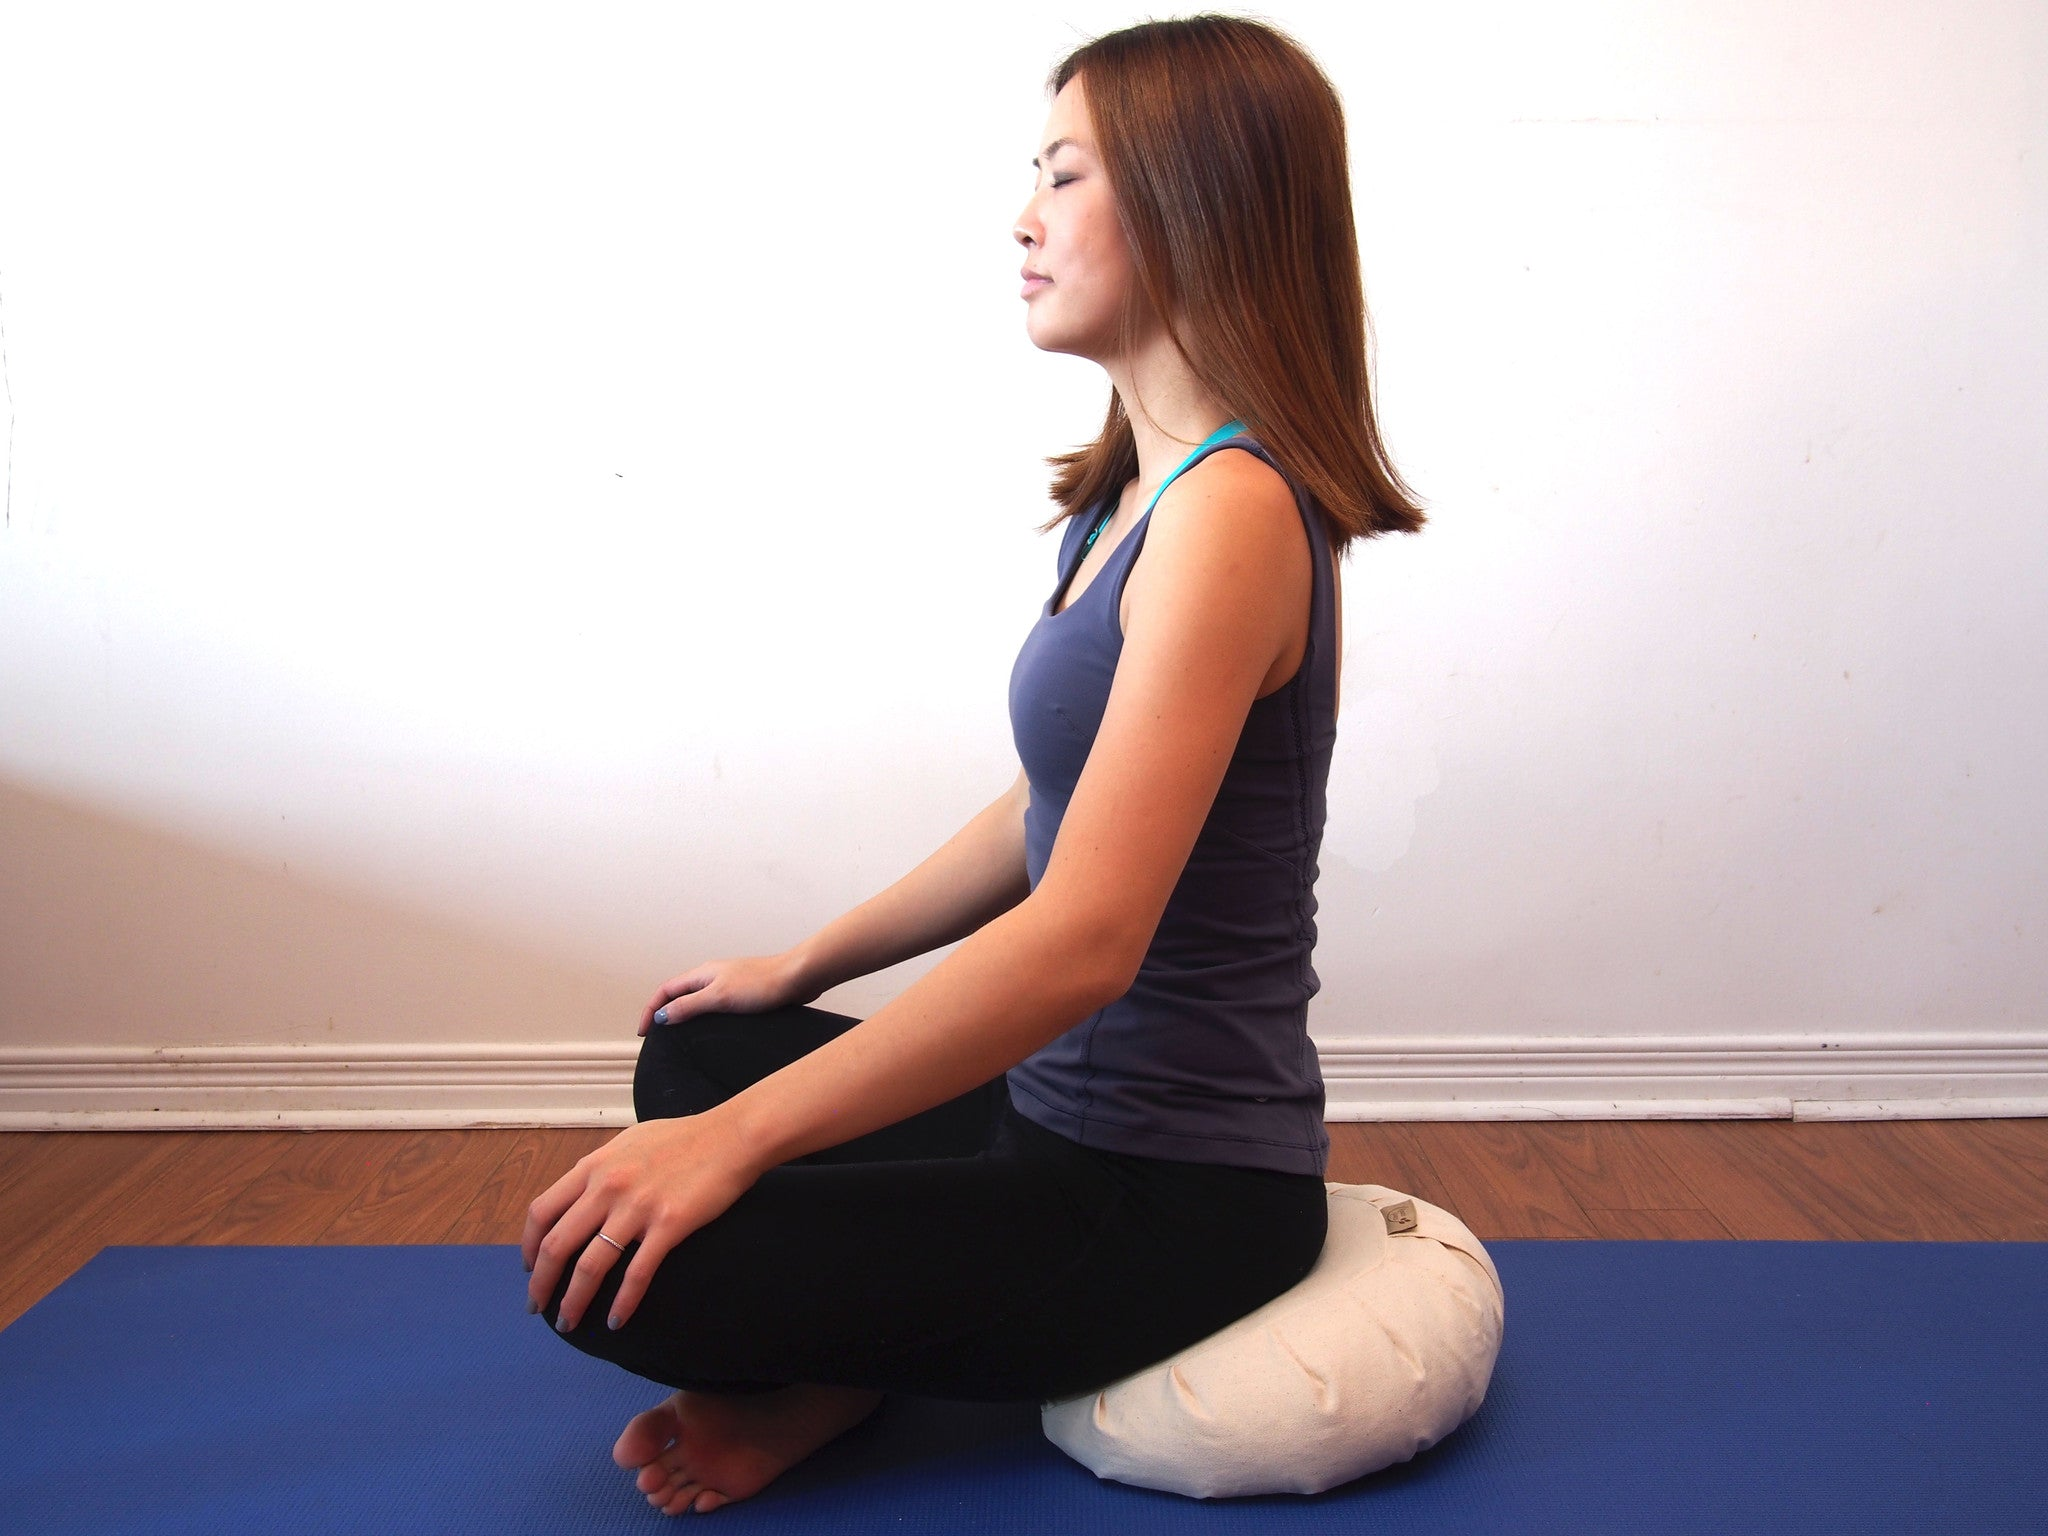 Meditating on zafu cushion